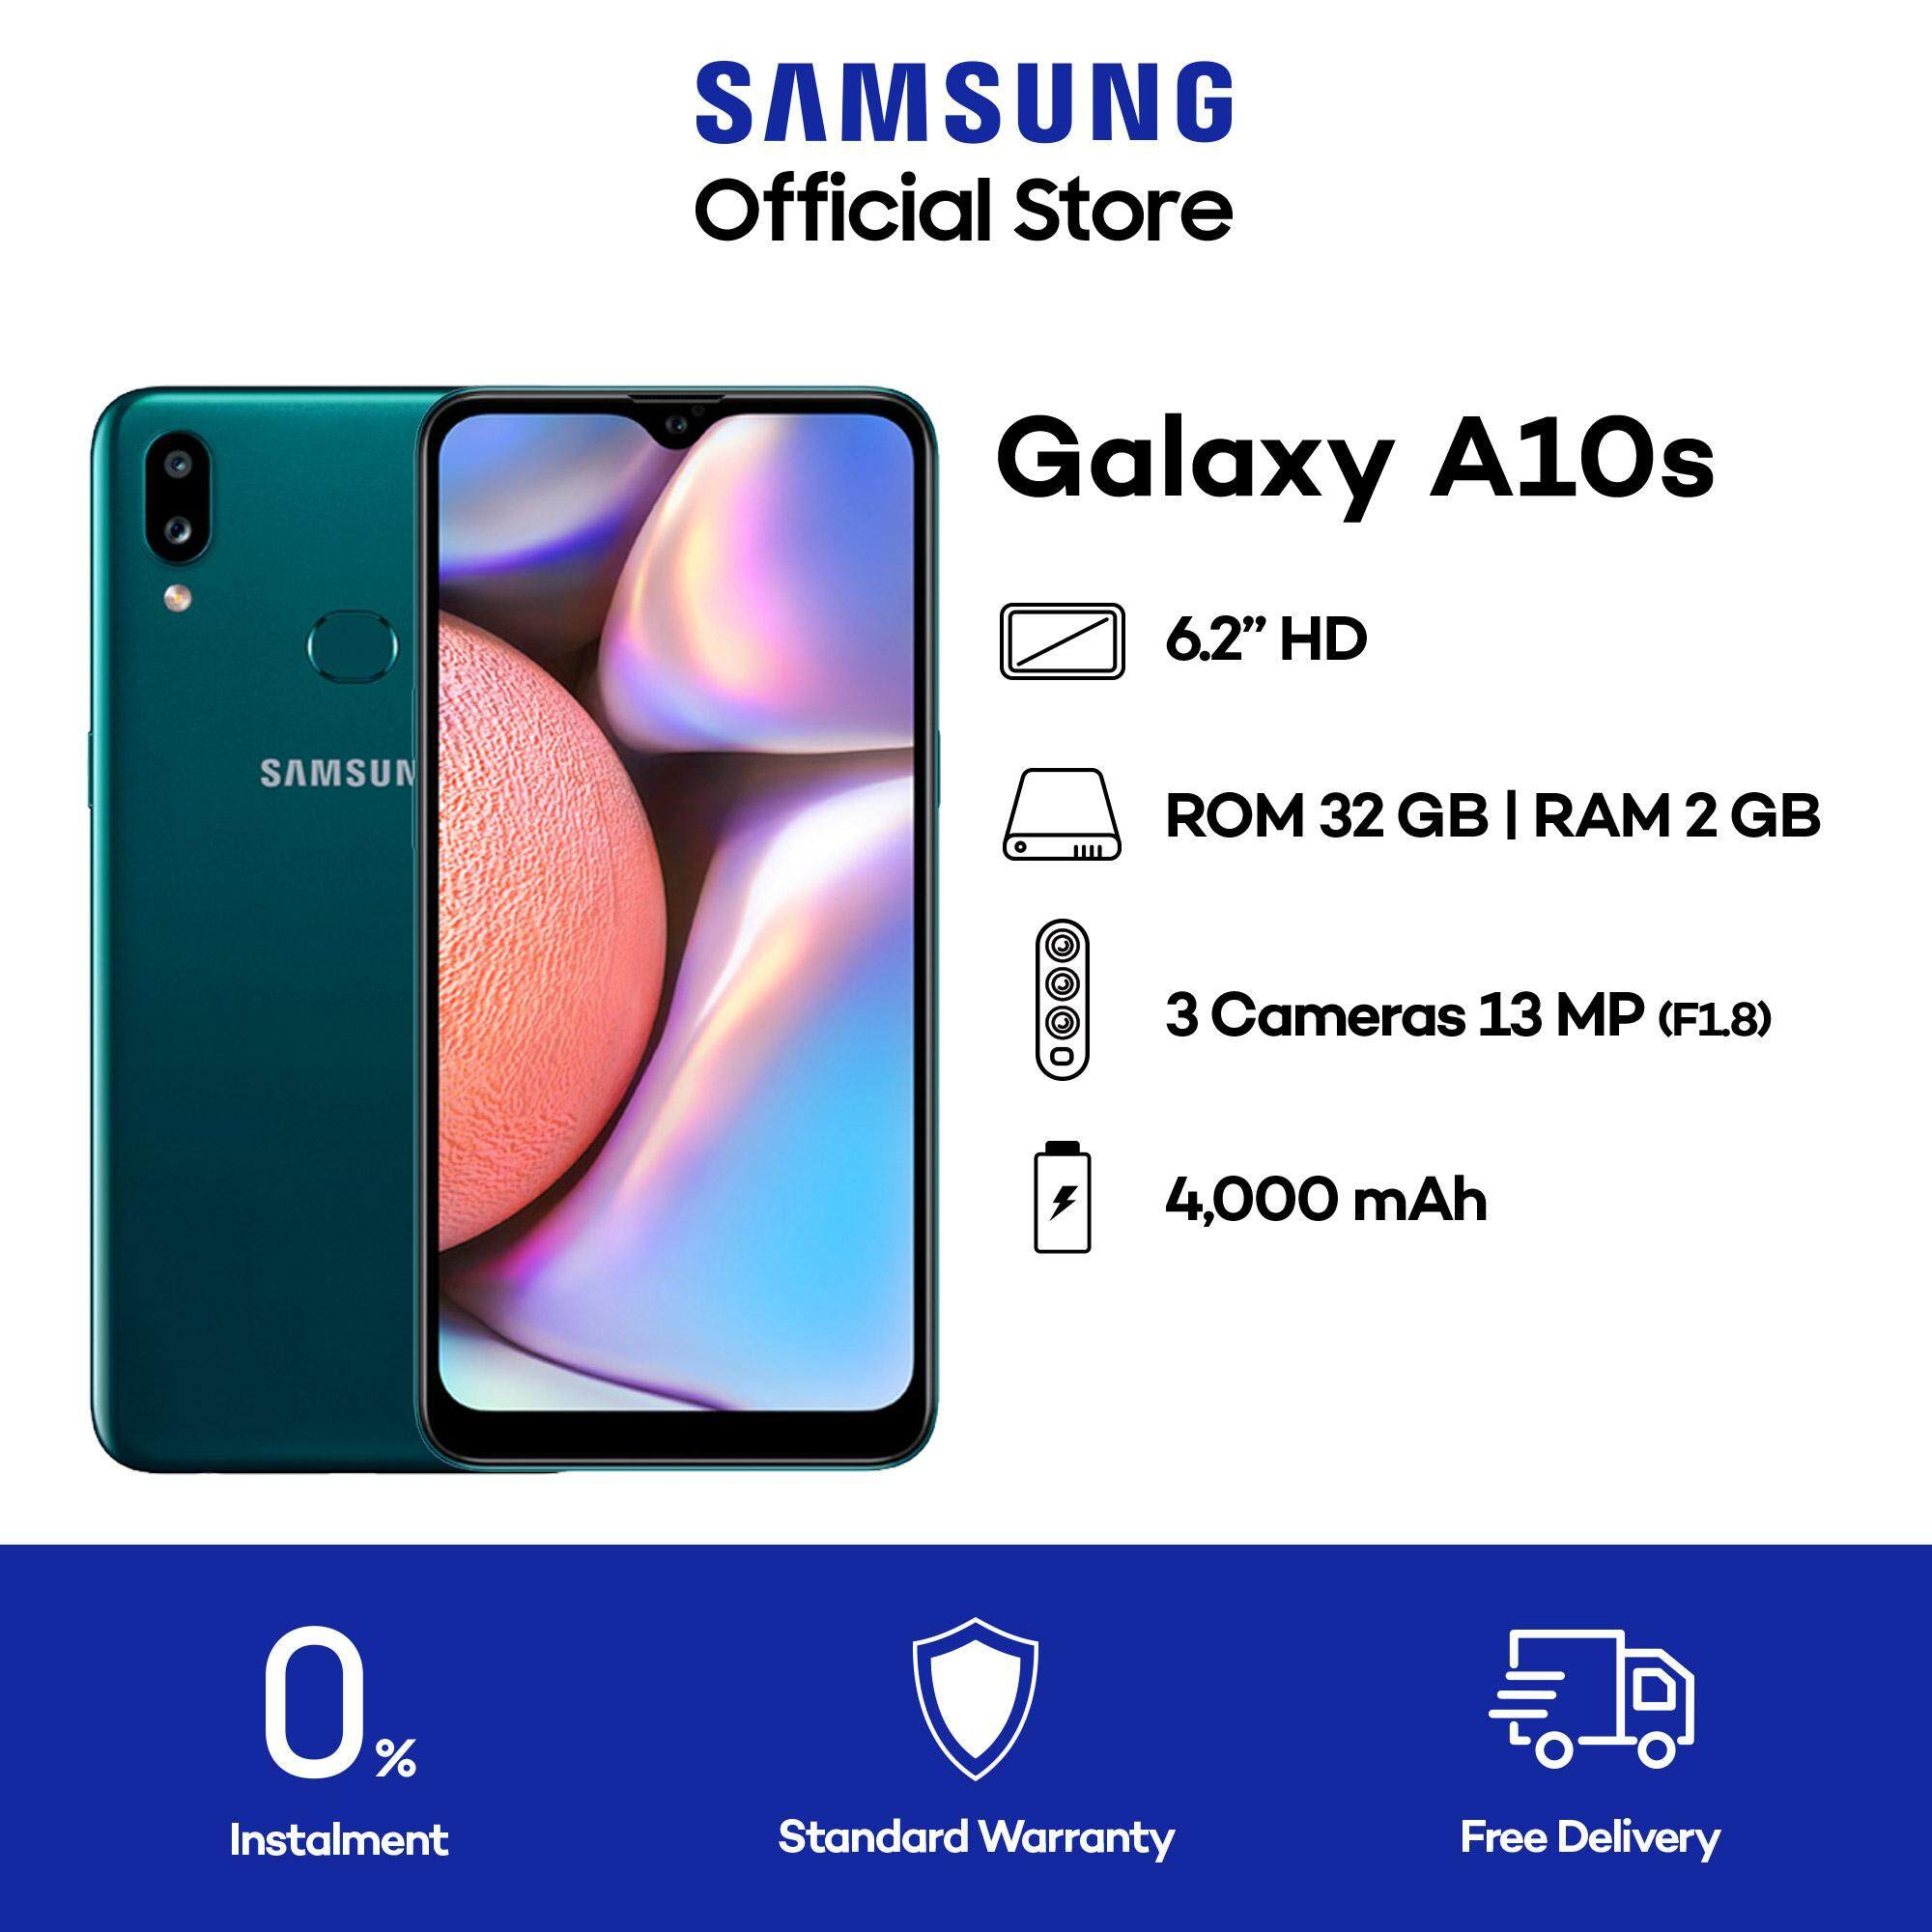 Samsung Galaxy A10s (A107) (Black/ Green/ Red) - 2GB RAM - 32GB ROM - 6.2 inch - Android Handphone